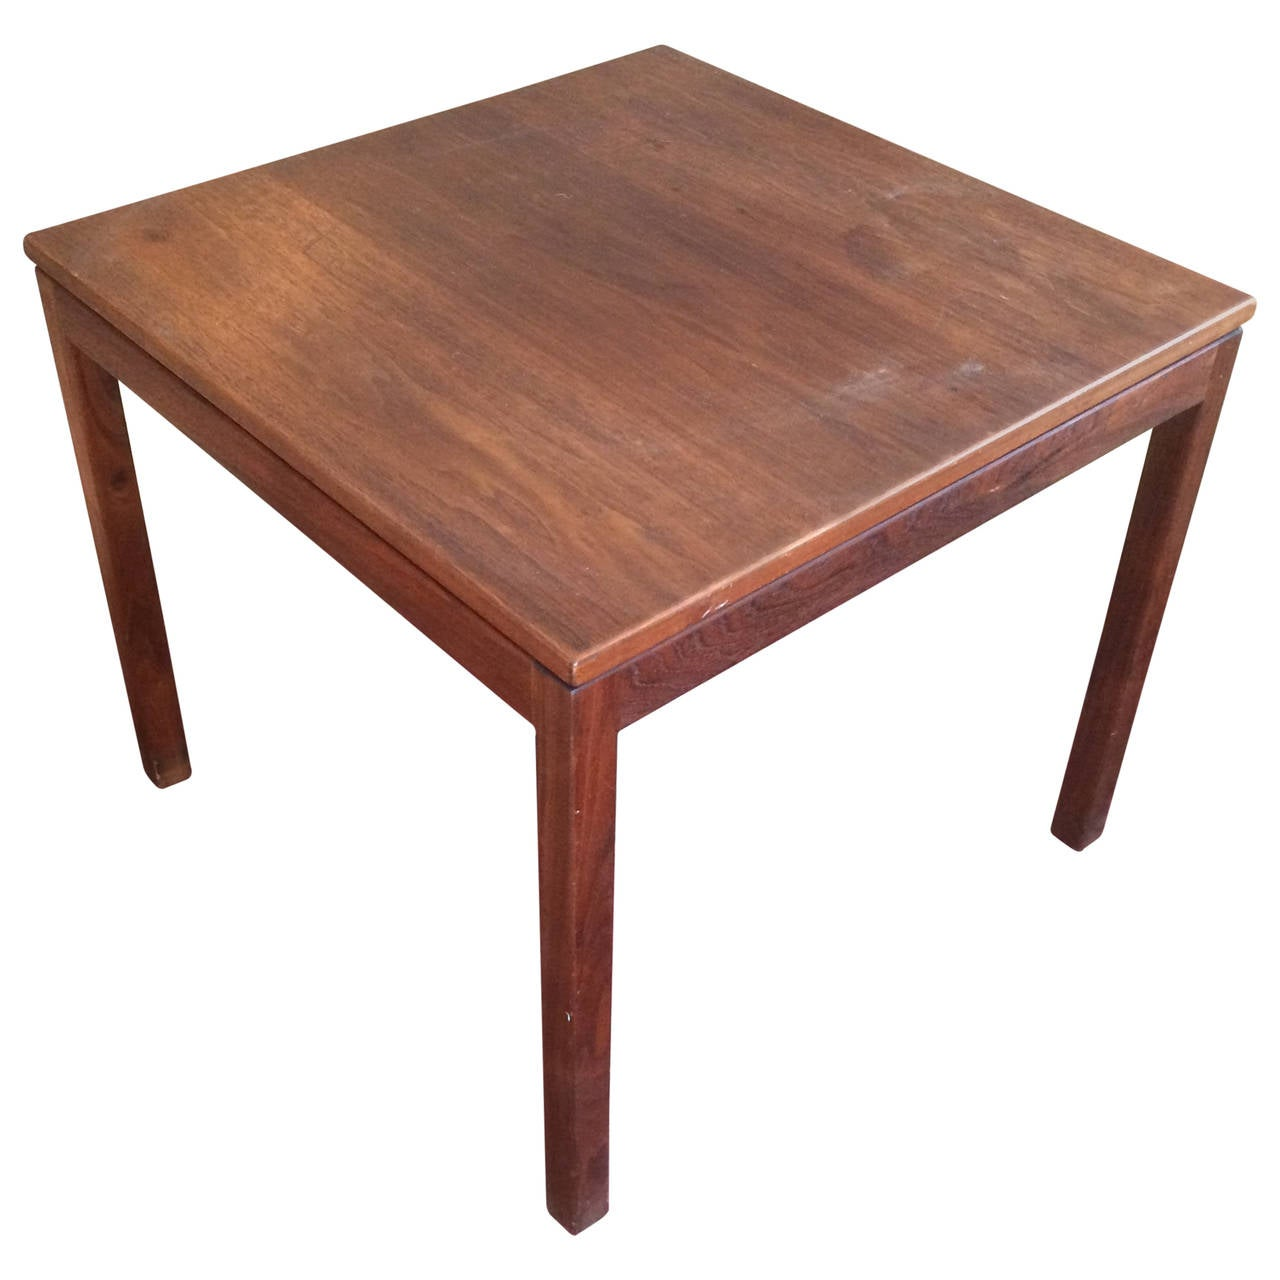 Danish Modern Walnut End Table By Jens Risom At 1stdibs